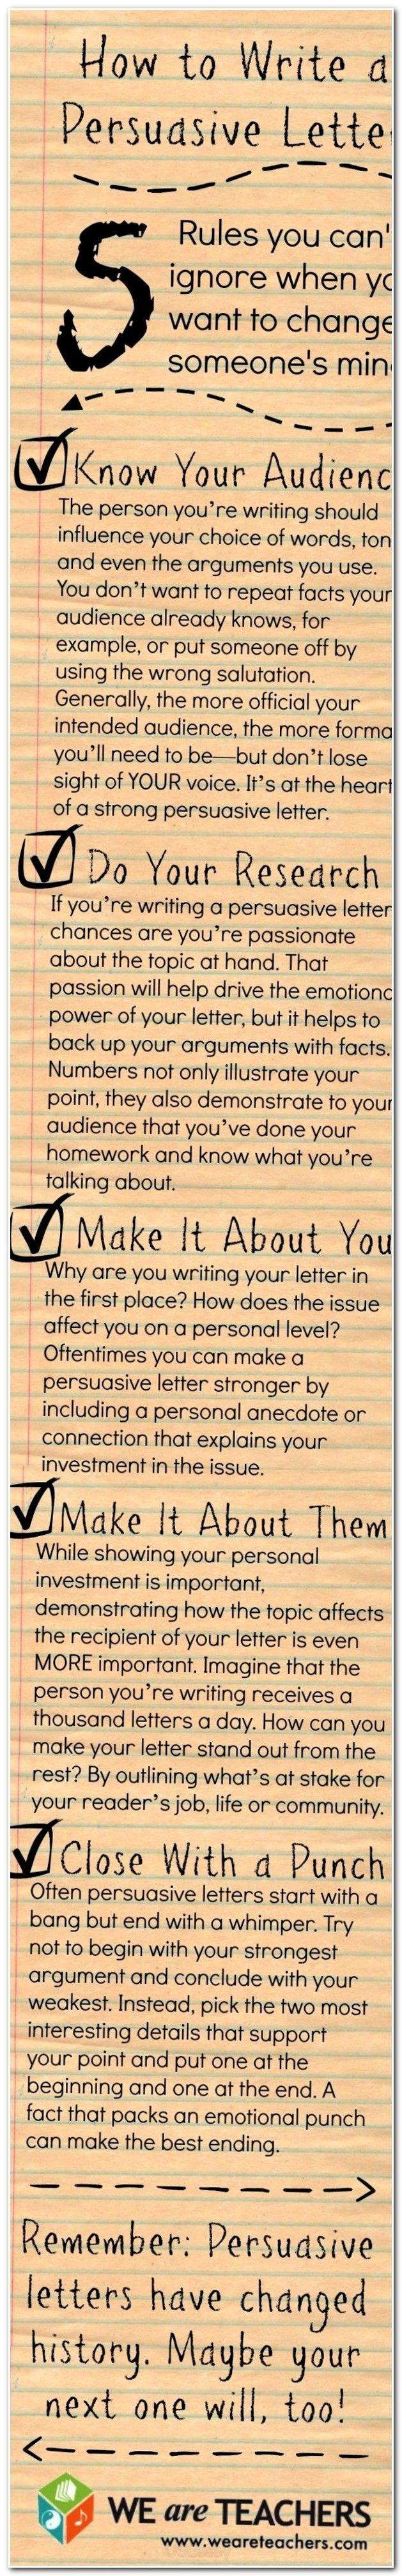 essay essaytips persuasive and argumentative writing scholarship   essay essaytips persuasive and argumentative writing scholarship application letter financial need example